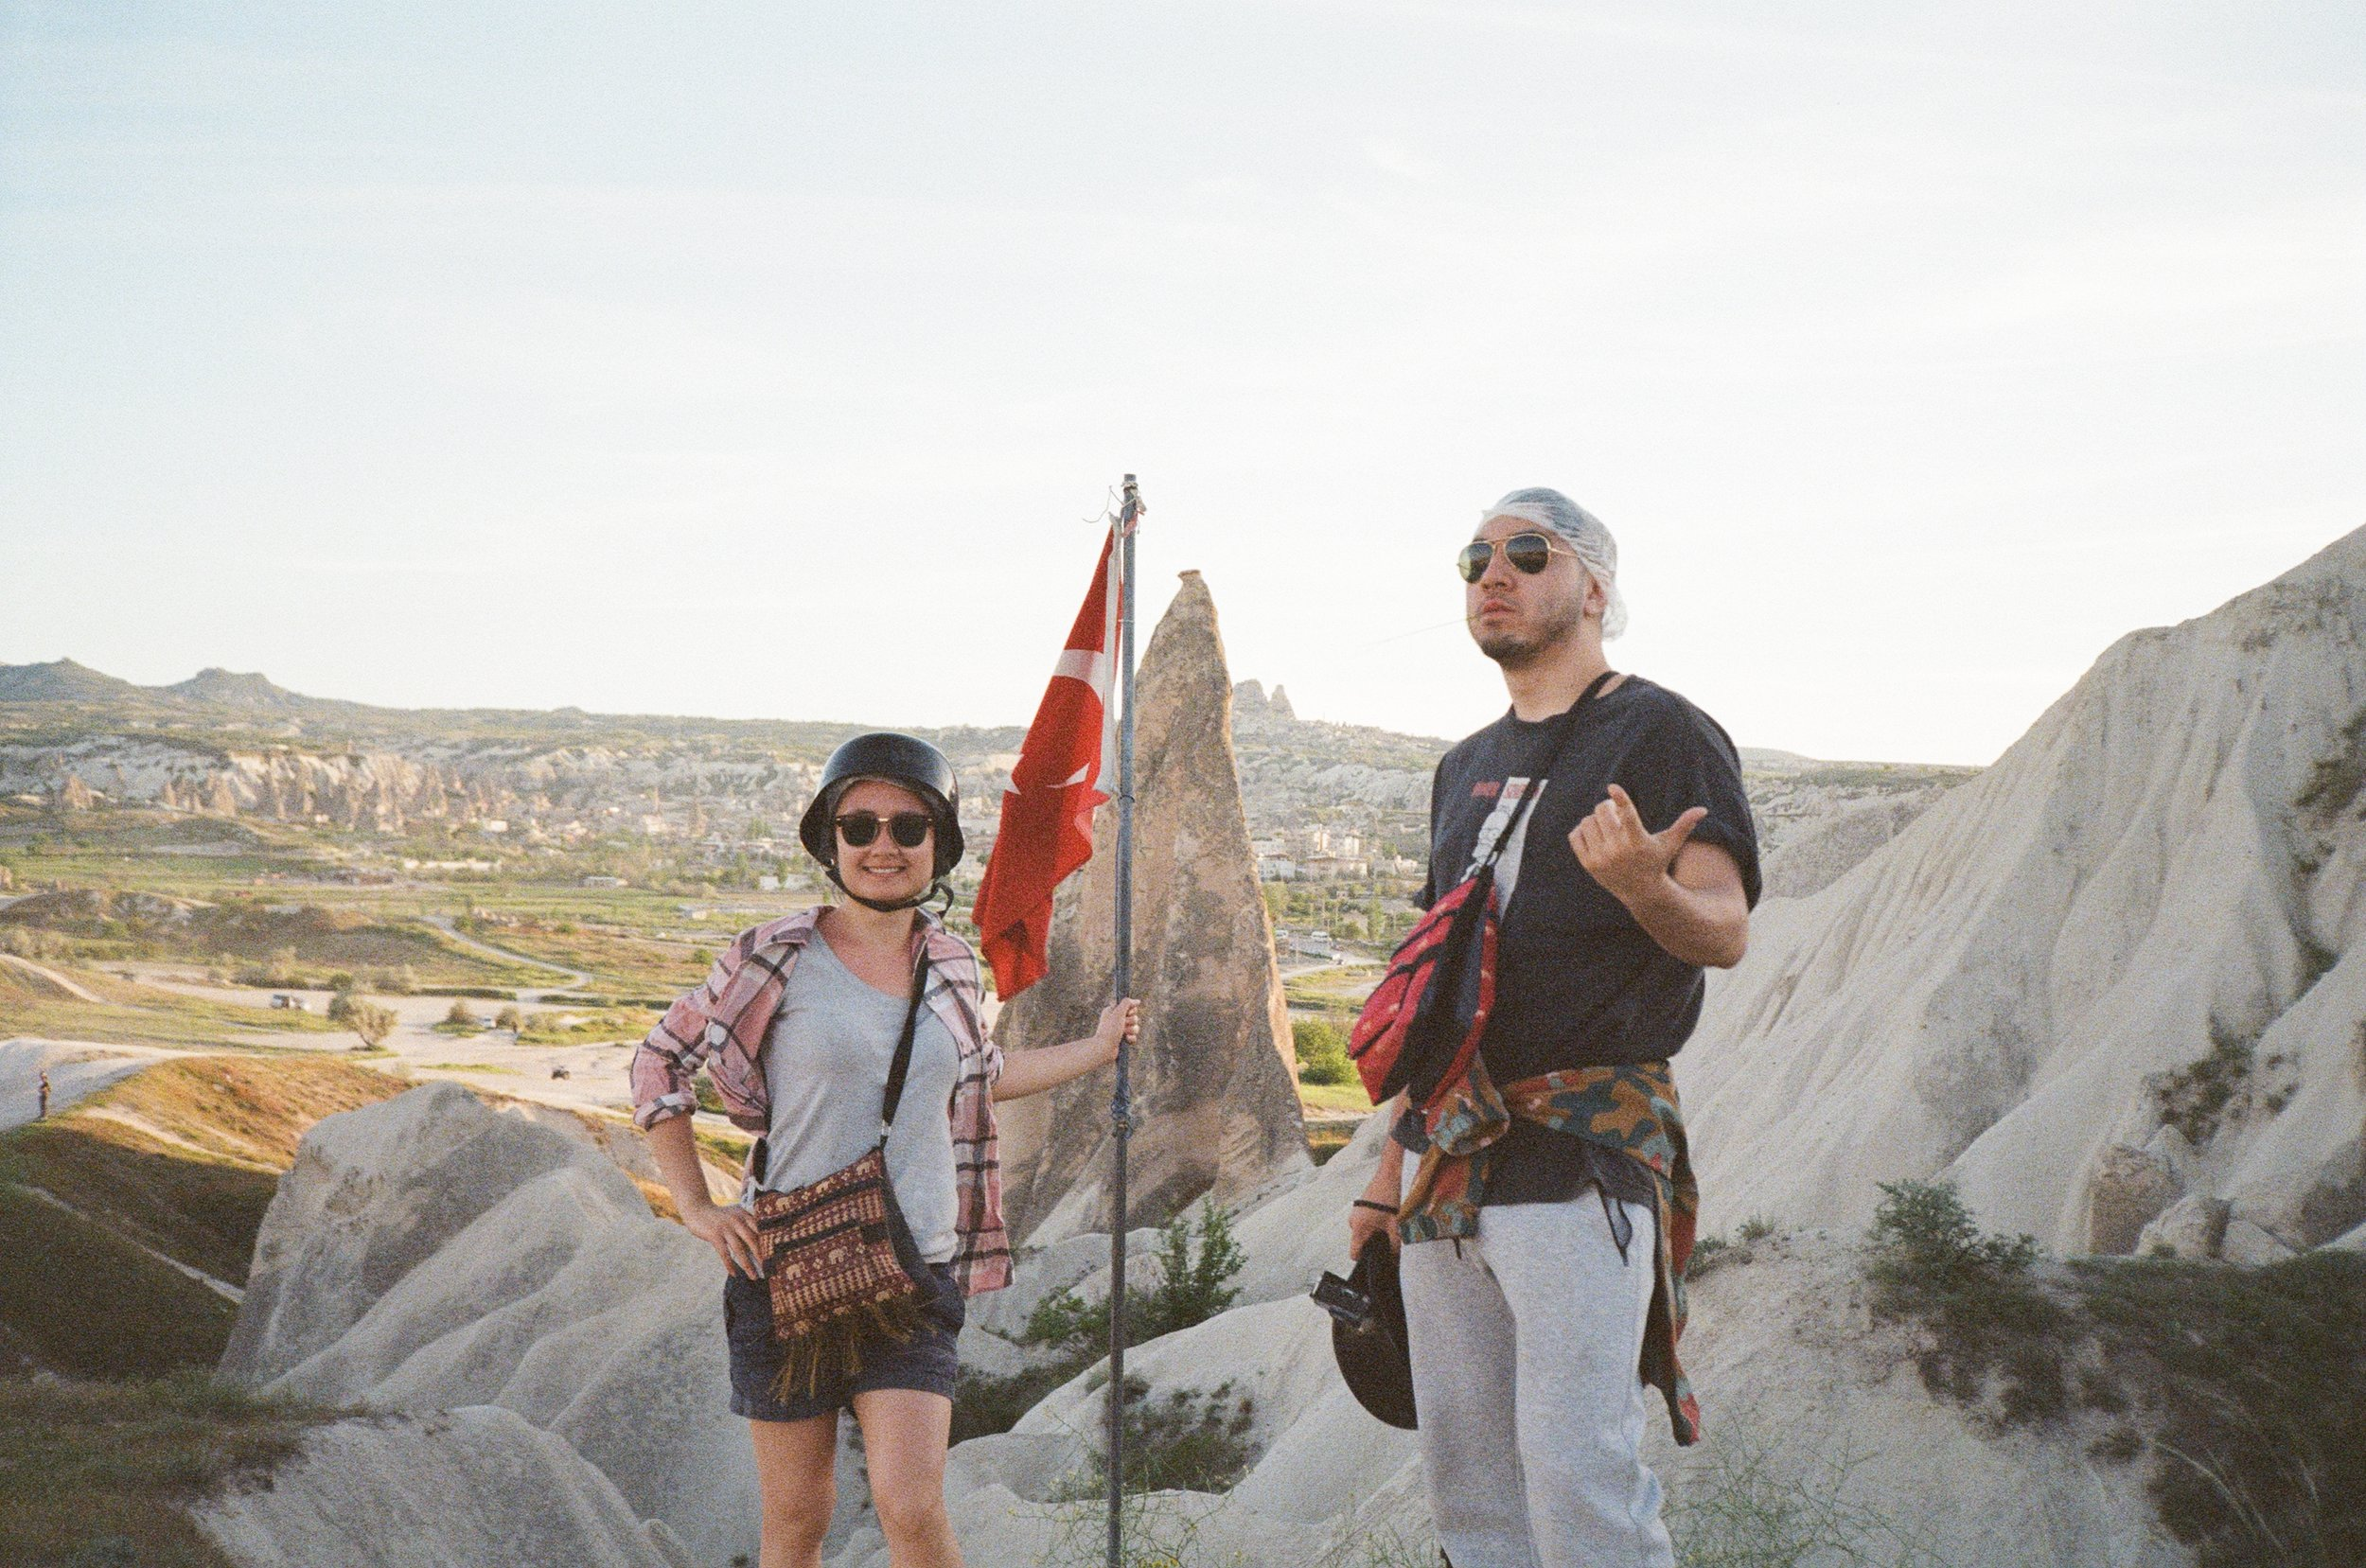 Monika and Michael in 35mm, Cappadocia